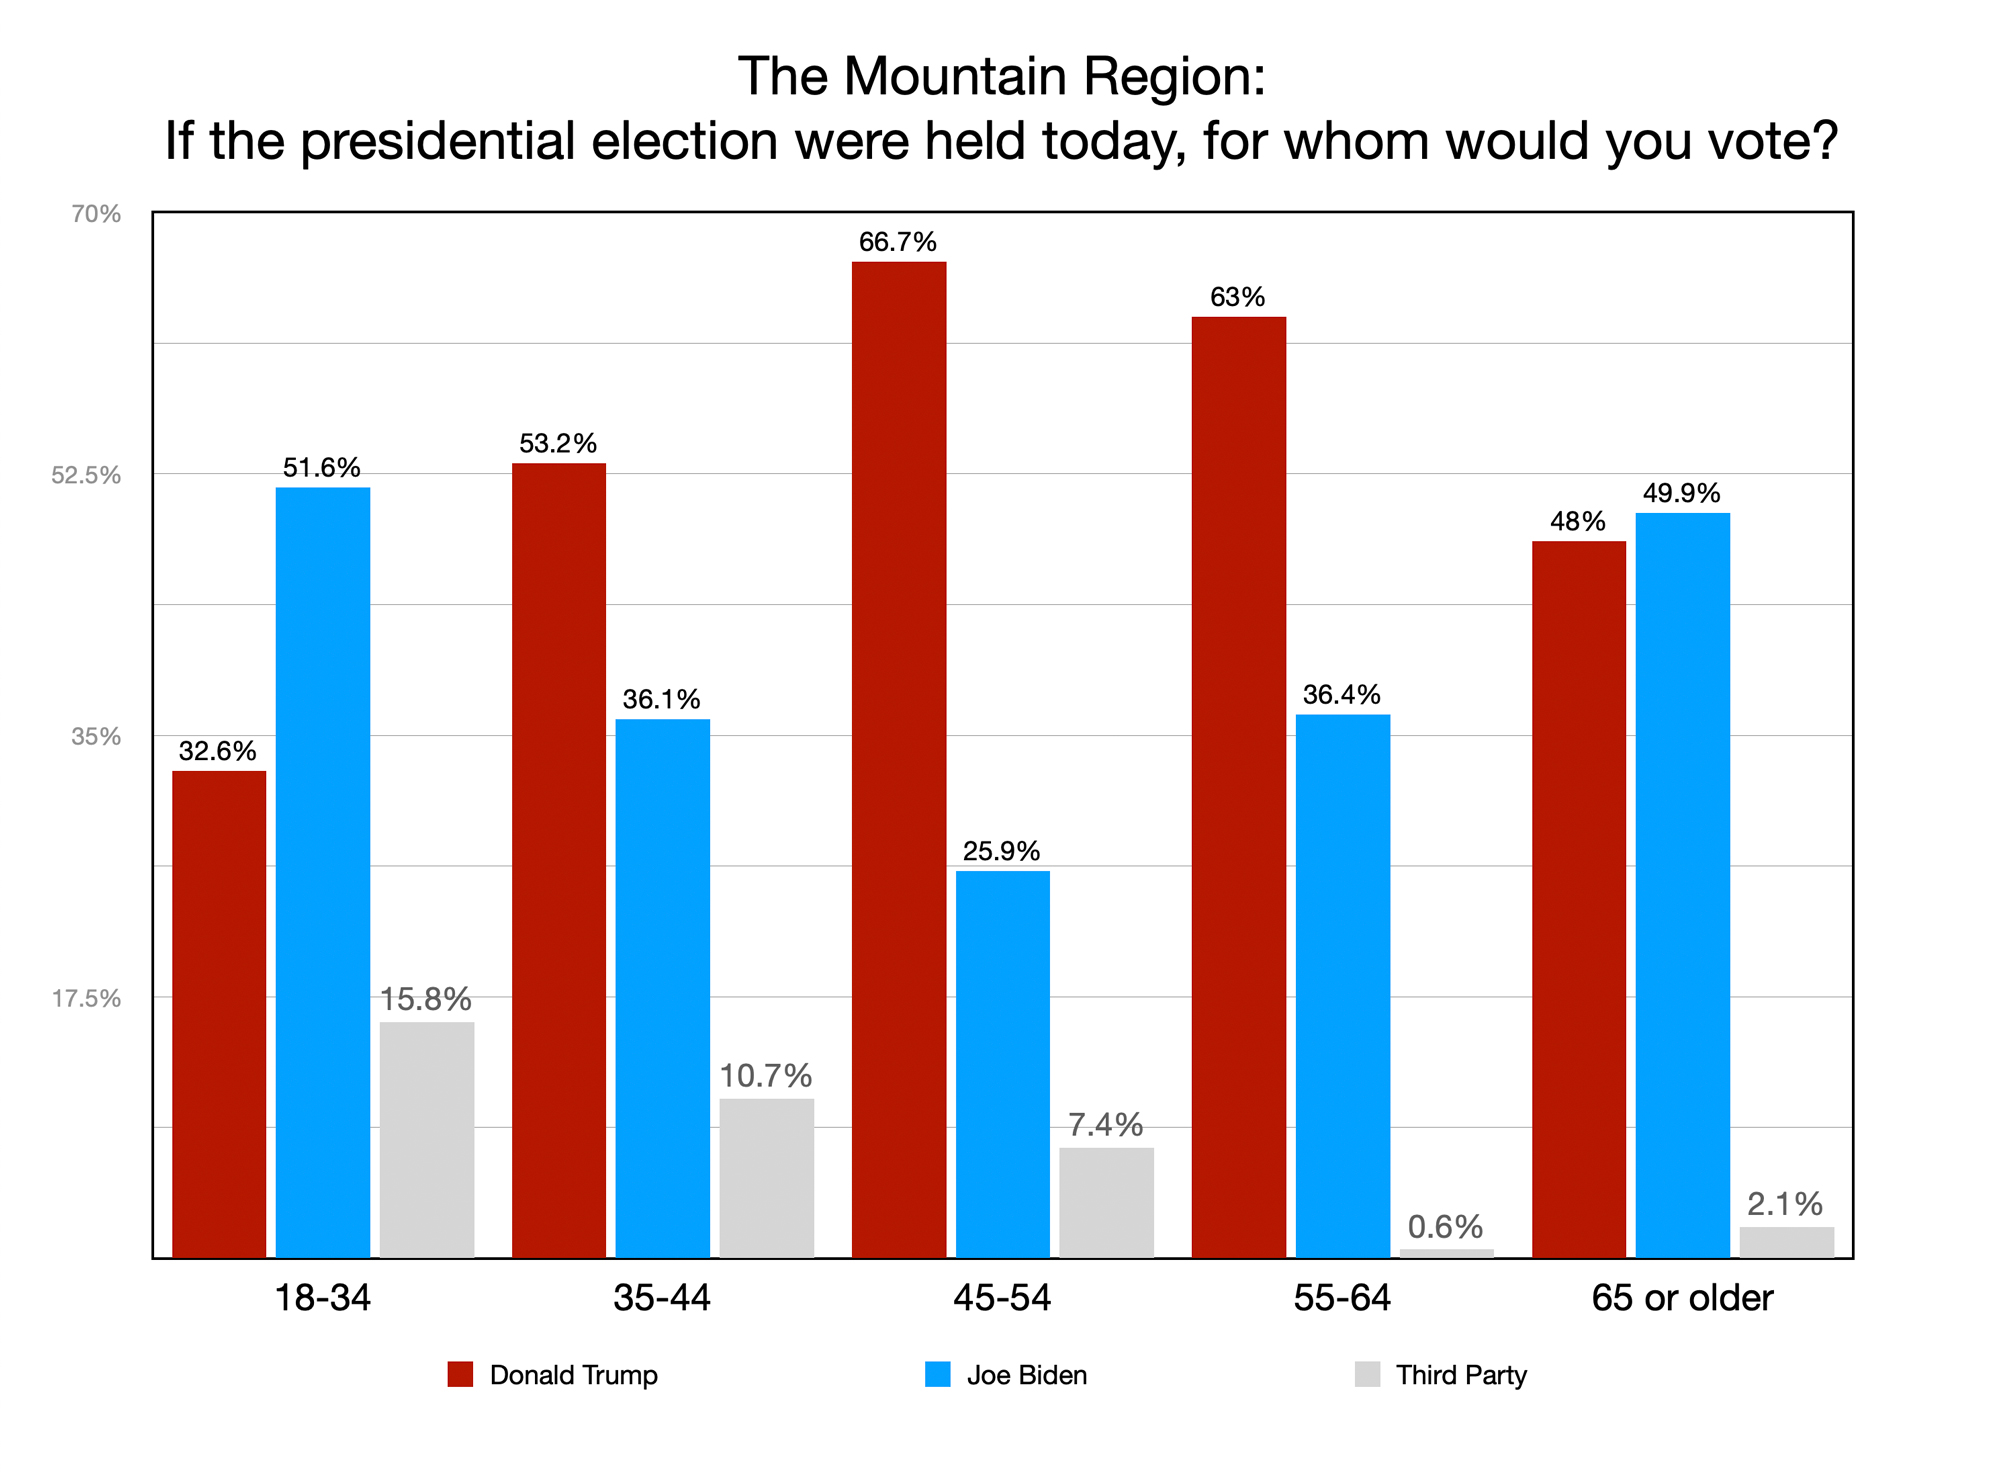 GRAPH:If the presidential election were held today, for whom would you vote?